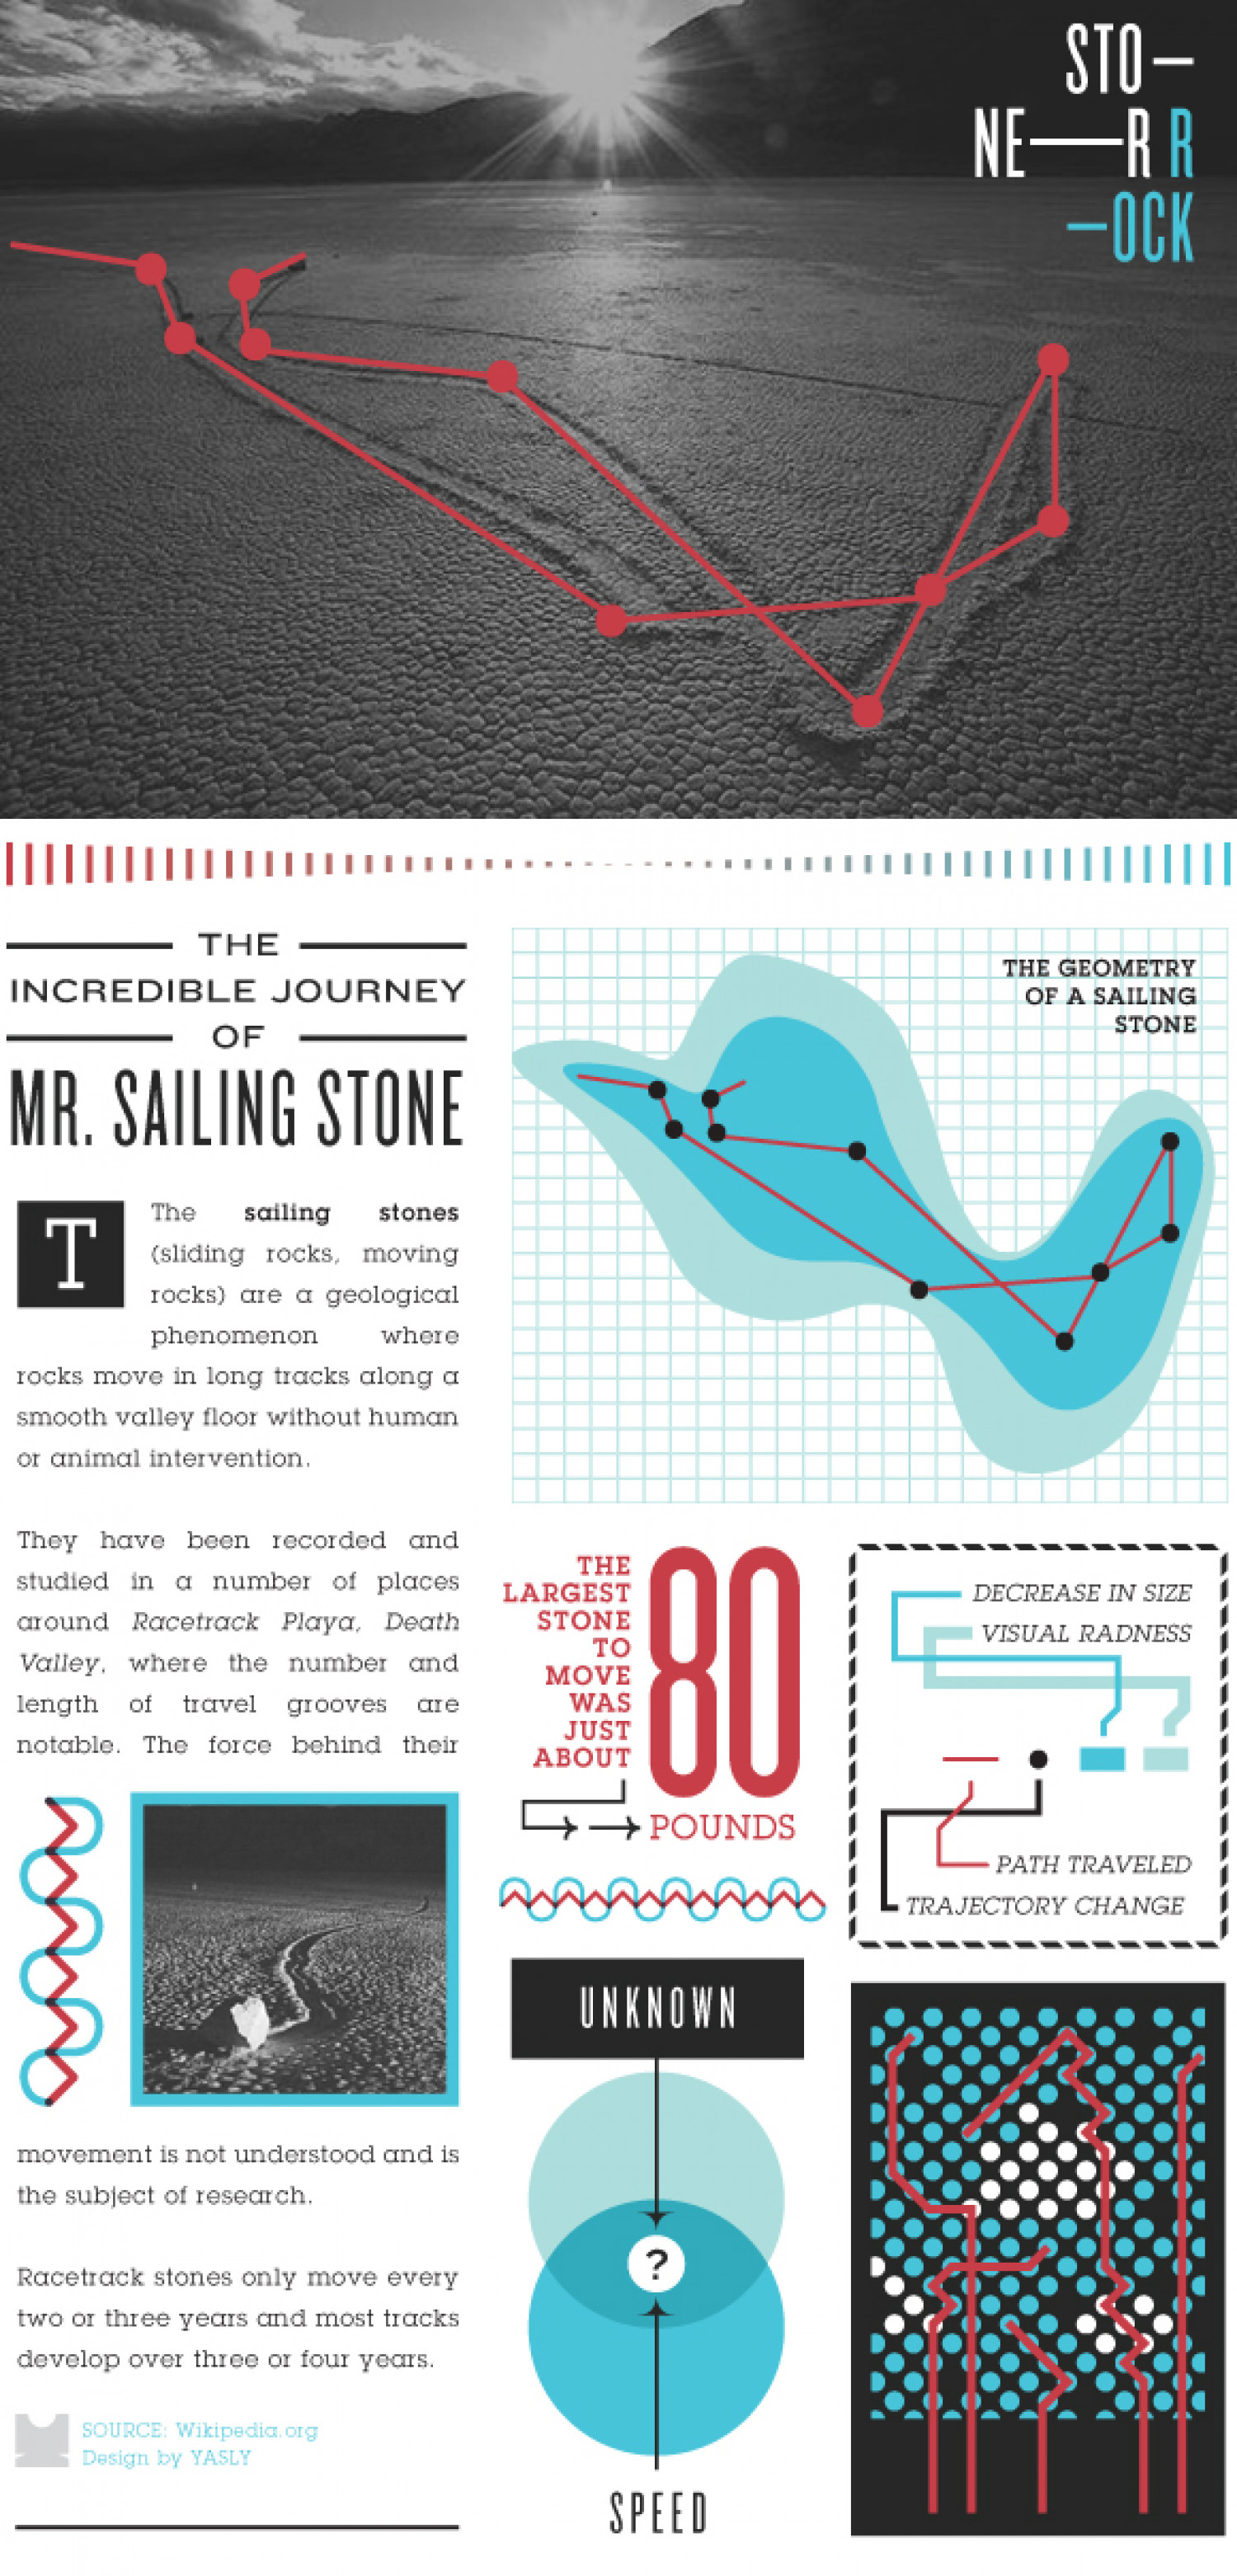 The Incredible Journey of Mr. Sailing Stone Infographic